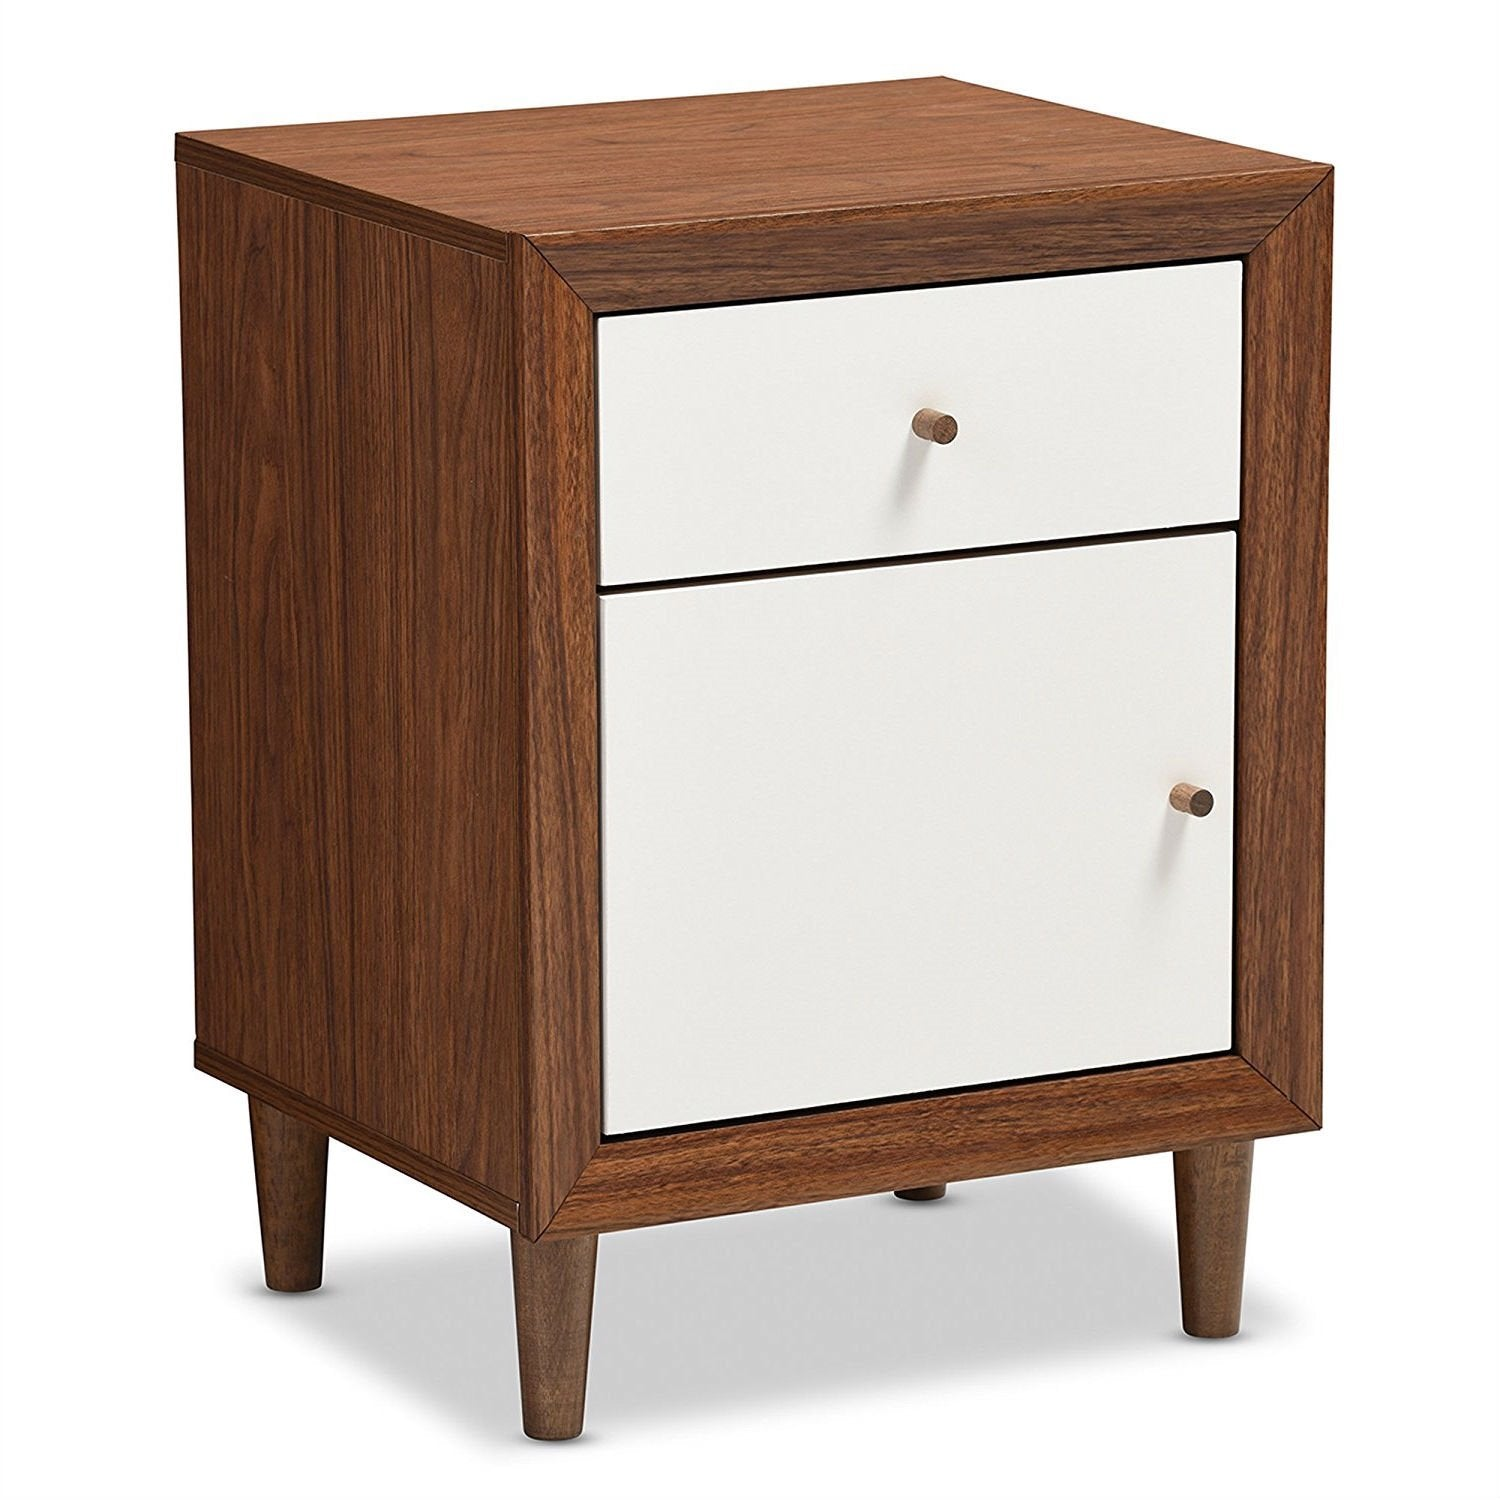 Modern Mid Century Style End Table Nightstand in White and Walnut Finish